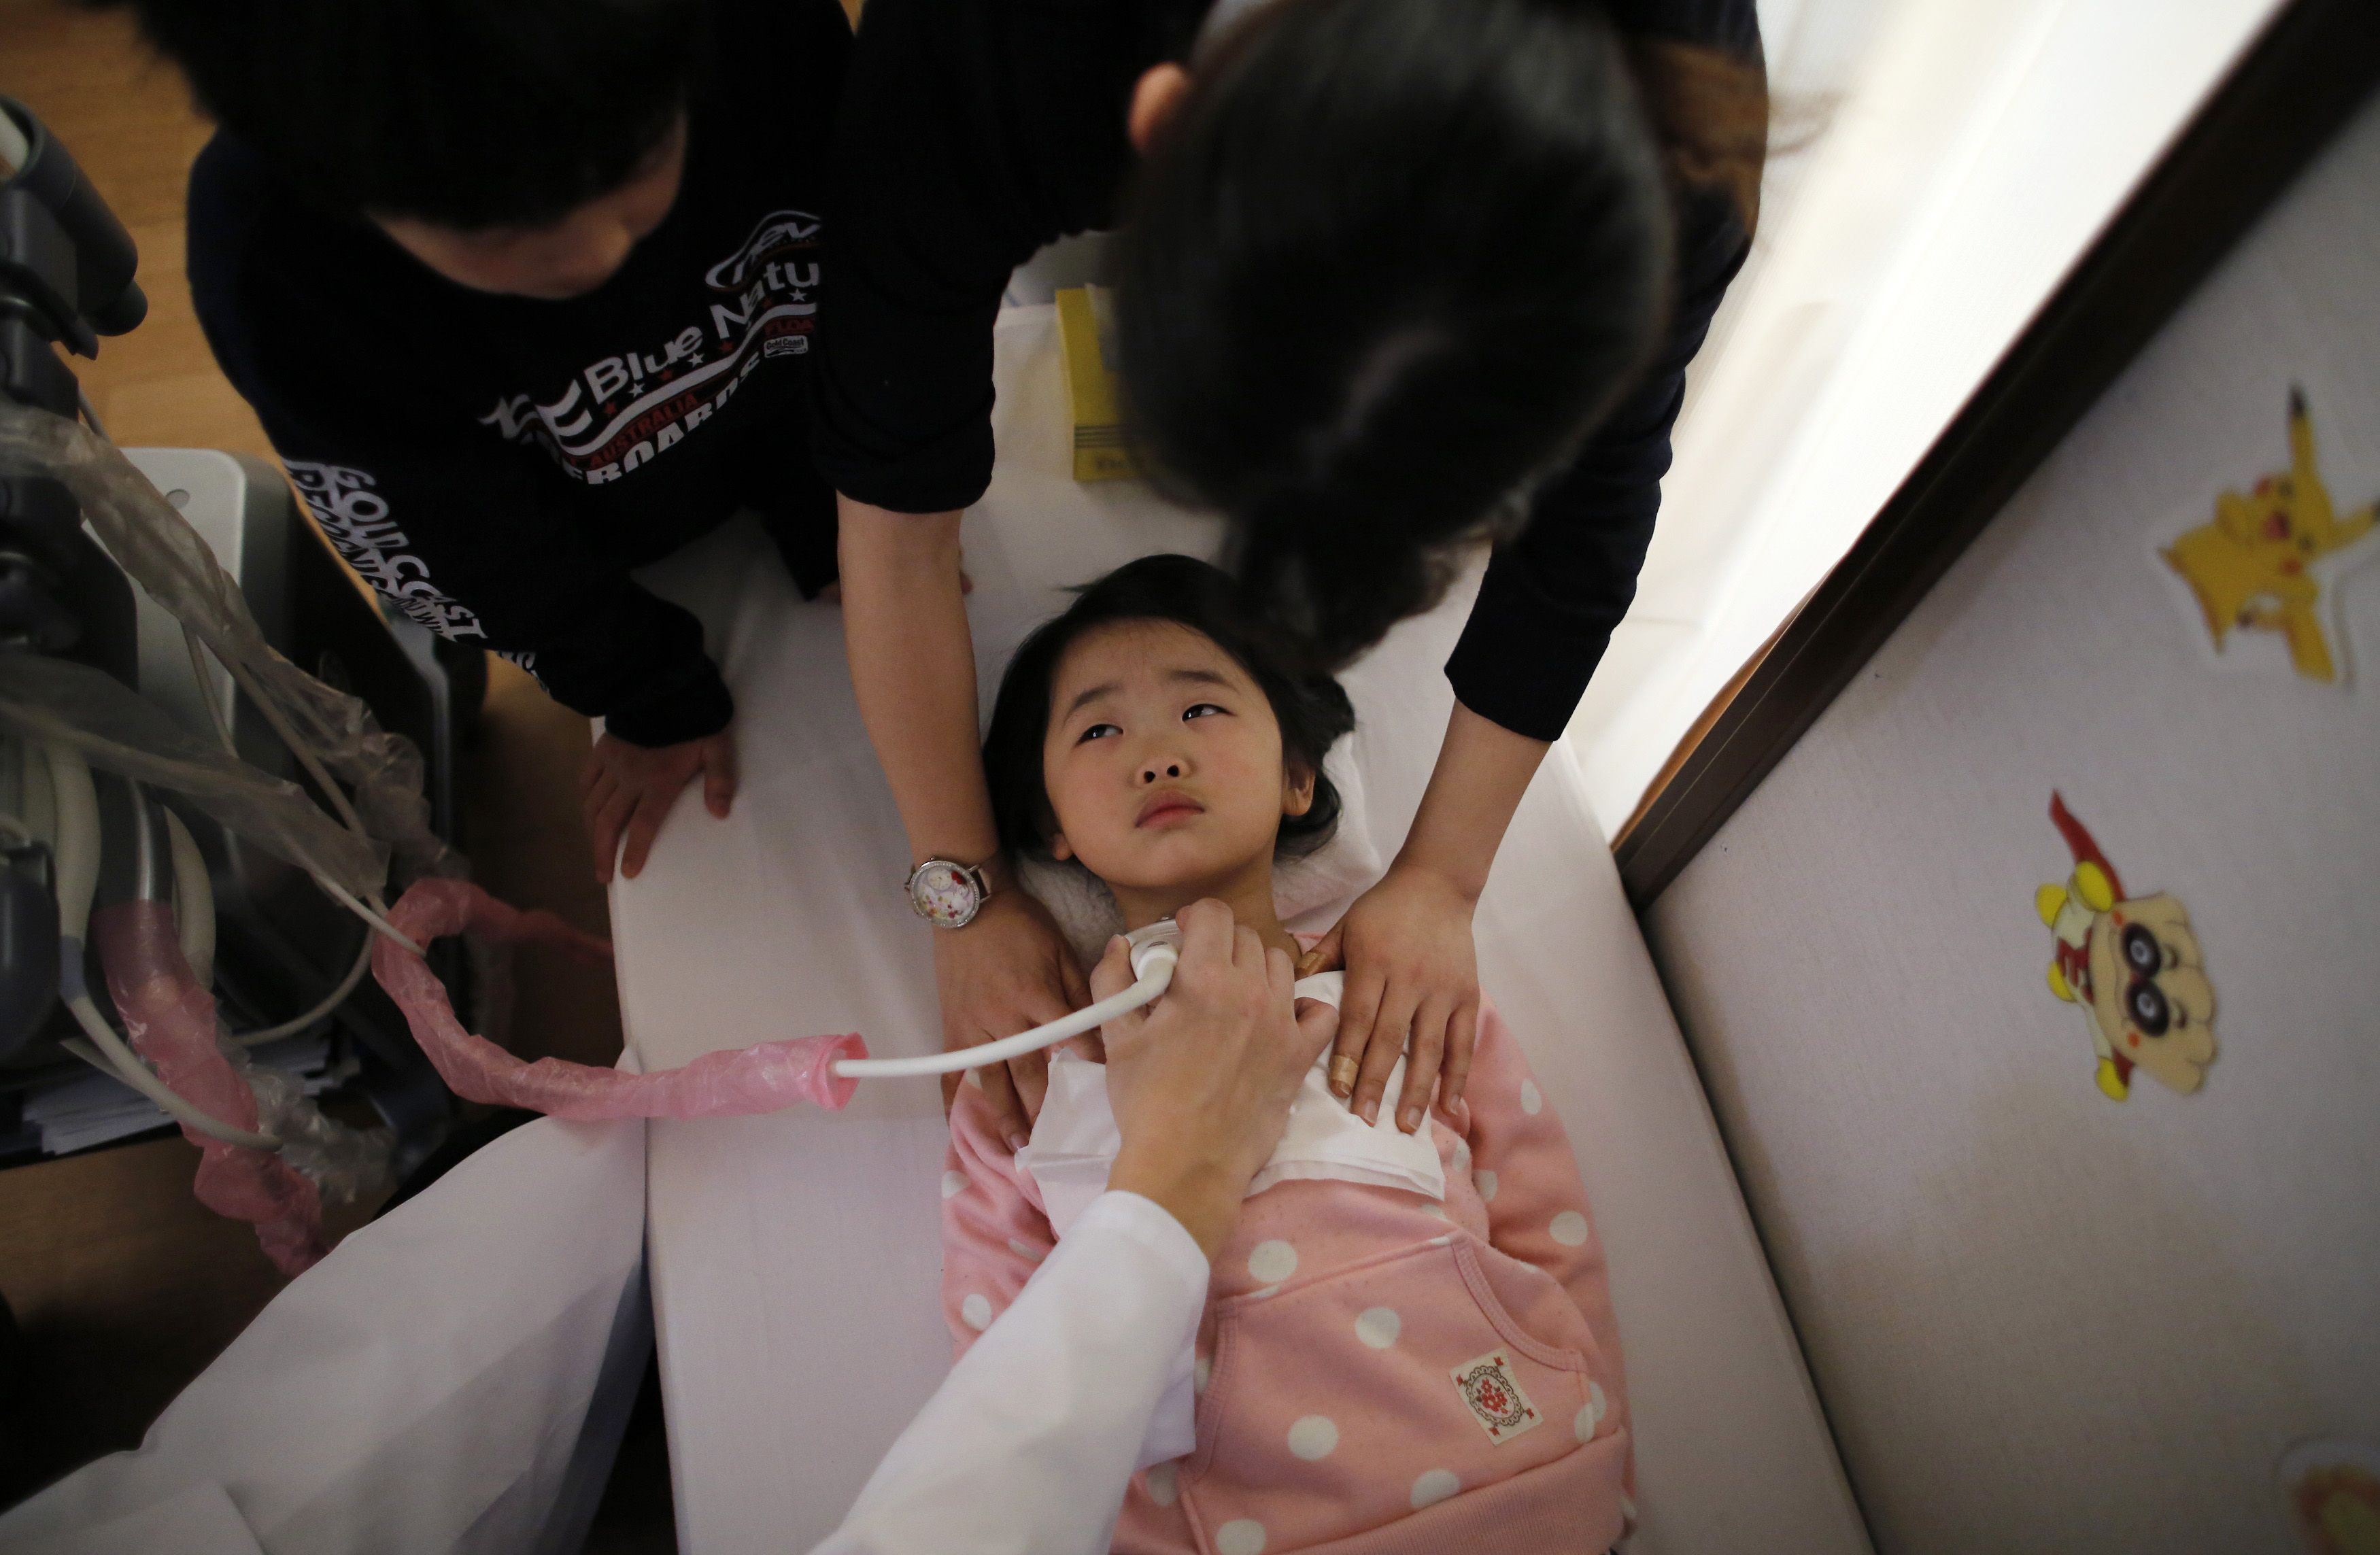 A doctor conducts a thyroid examination on 5-year-old girl as her older brother and a nurse take care of her at a clinic in temporary housing complex in Nihonmatsu, west of the tsunami-crippled Fukushima No. 1 nuclear power plant, on Feb. 27.